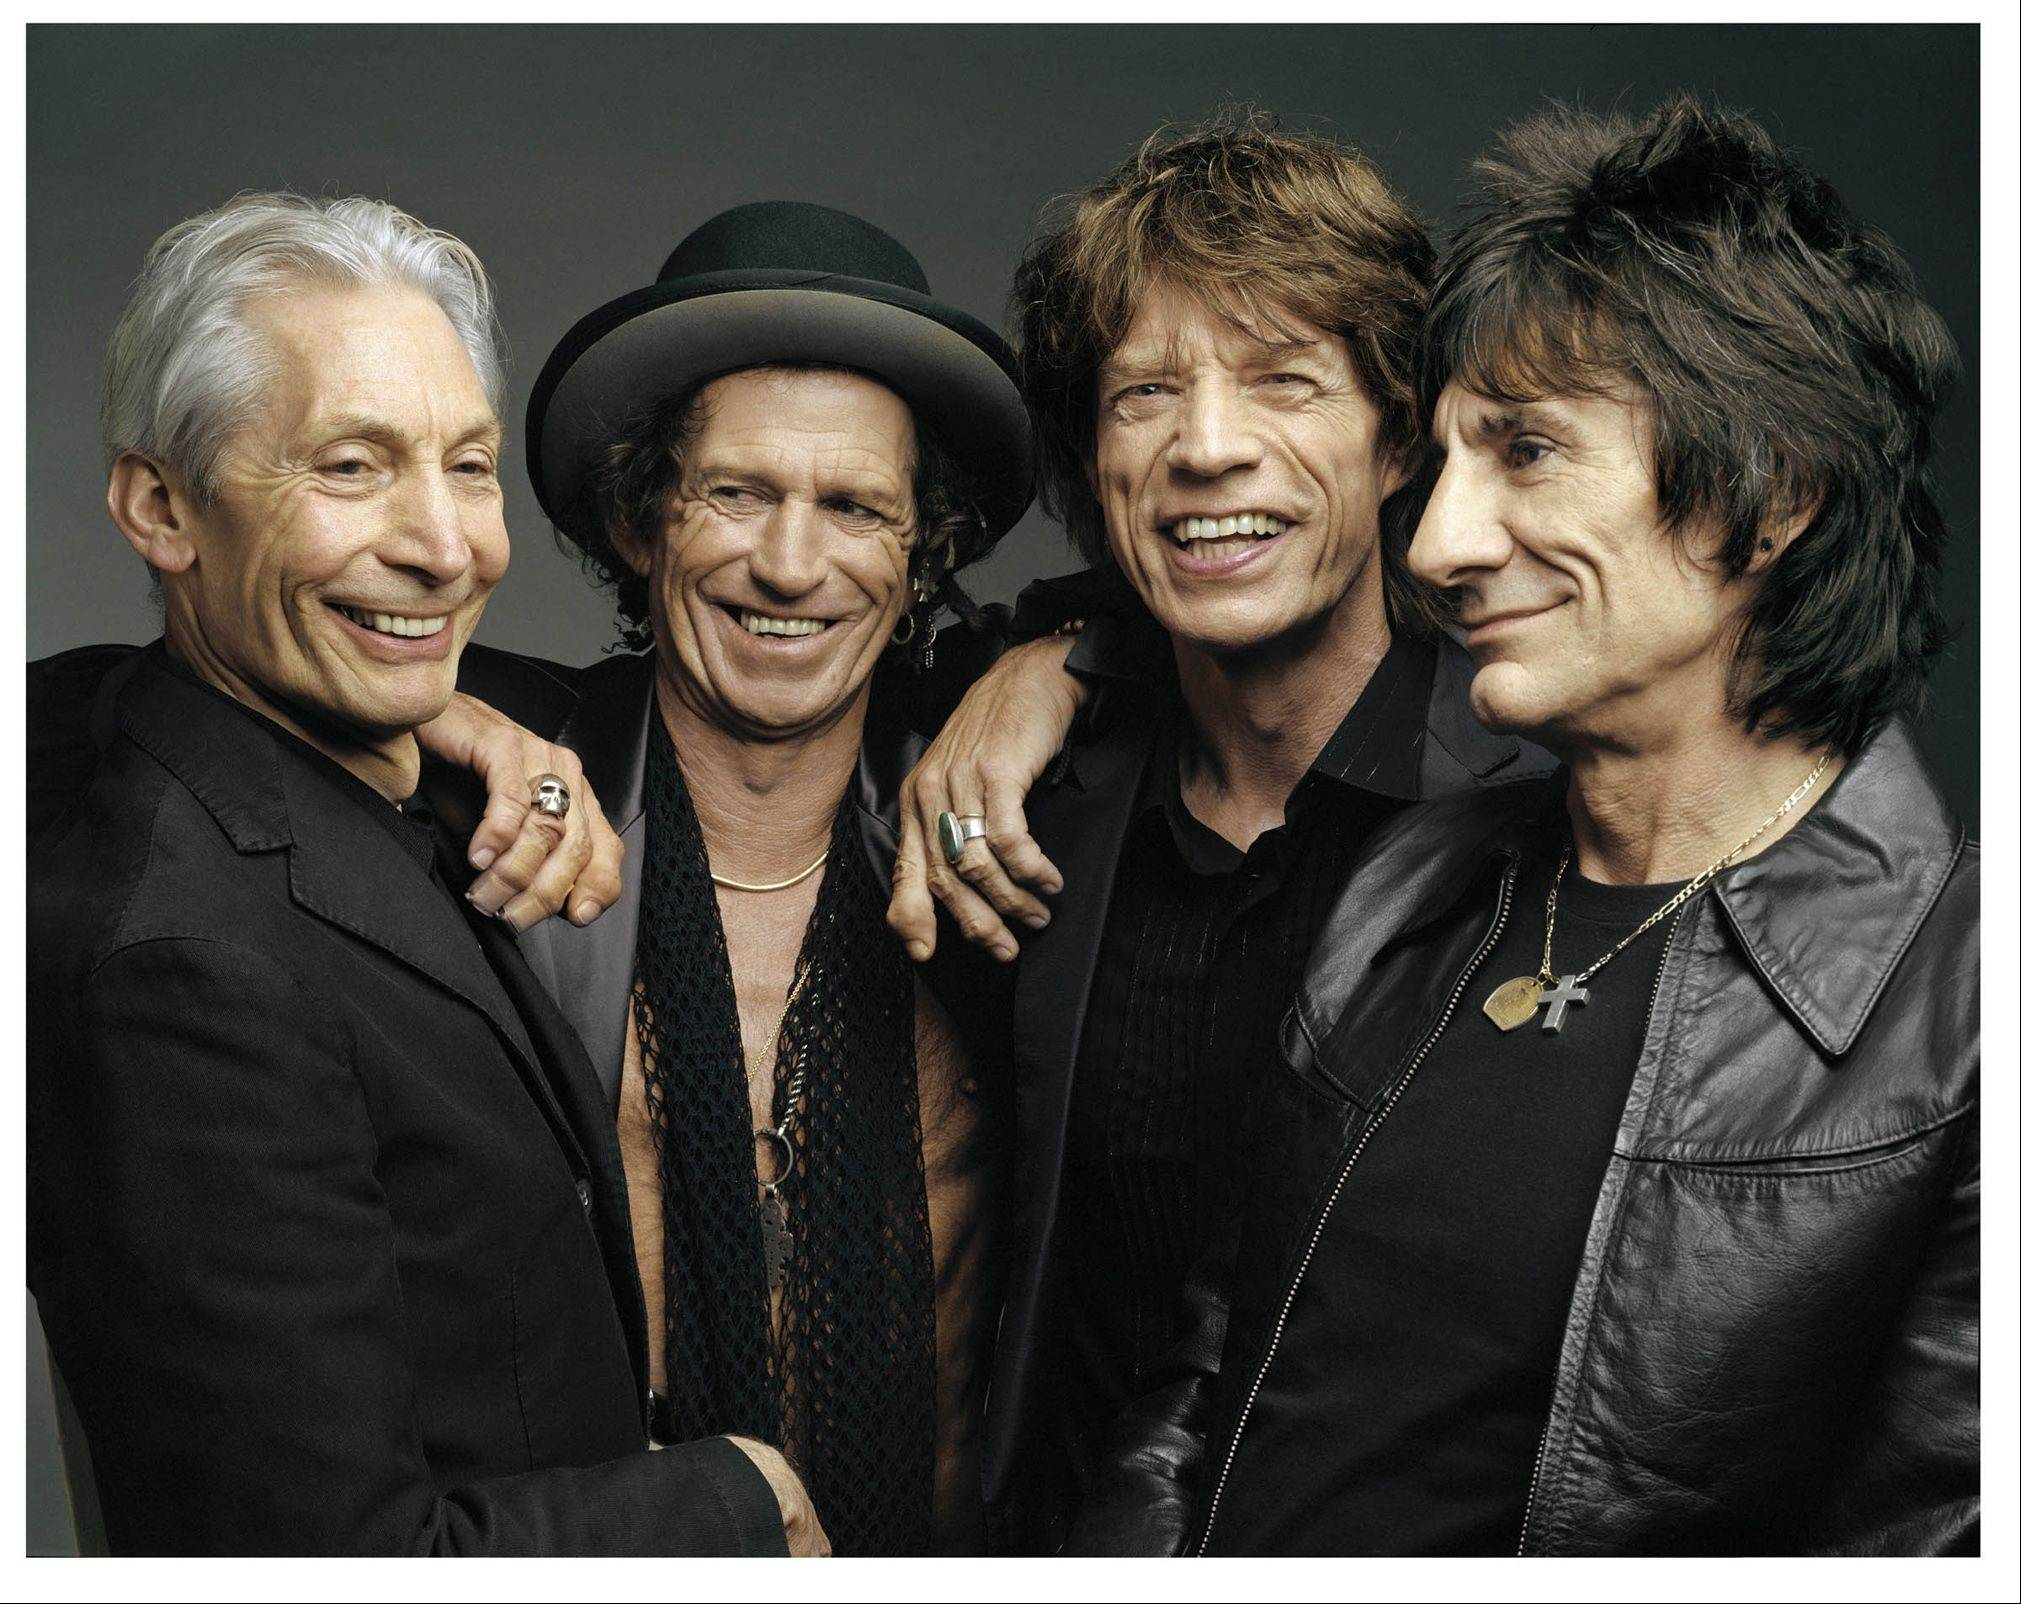 The Rolling Stones, seen here in 2005, will mark the band's 50th anniversary next year.